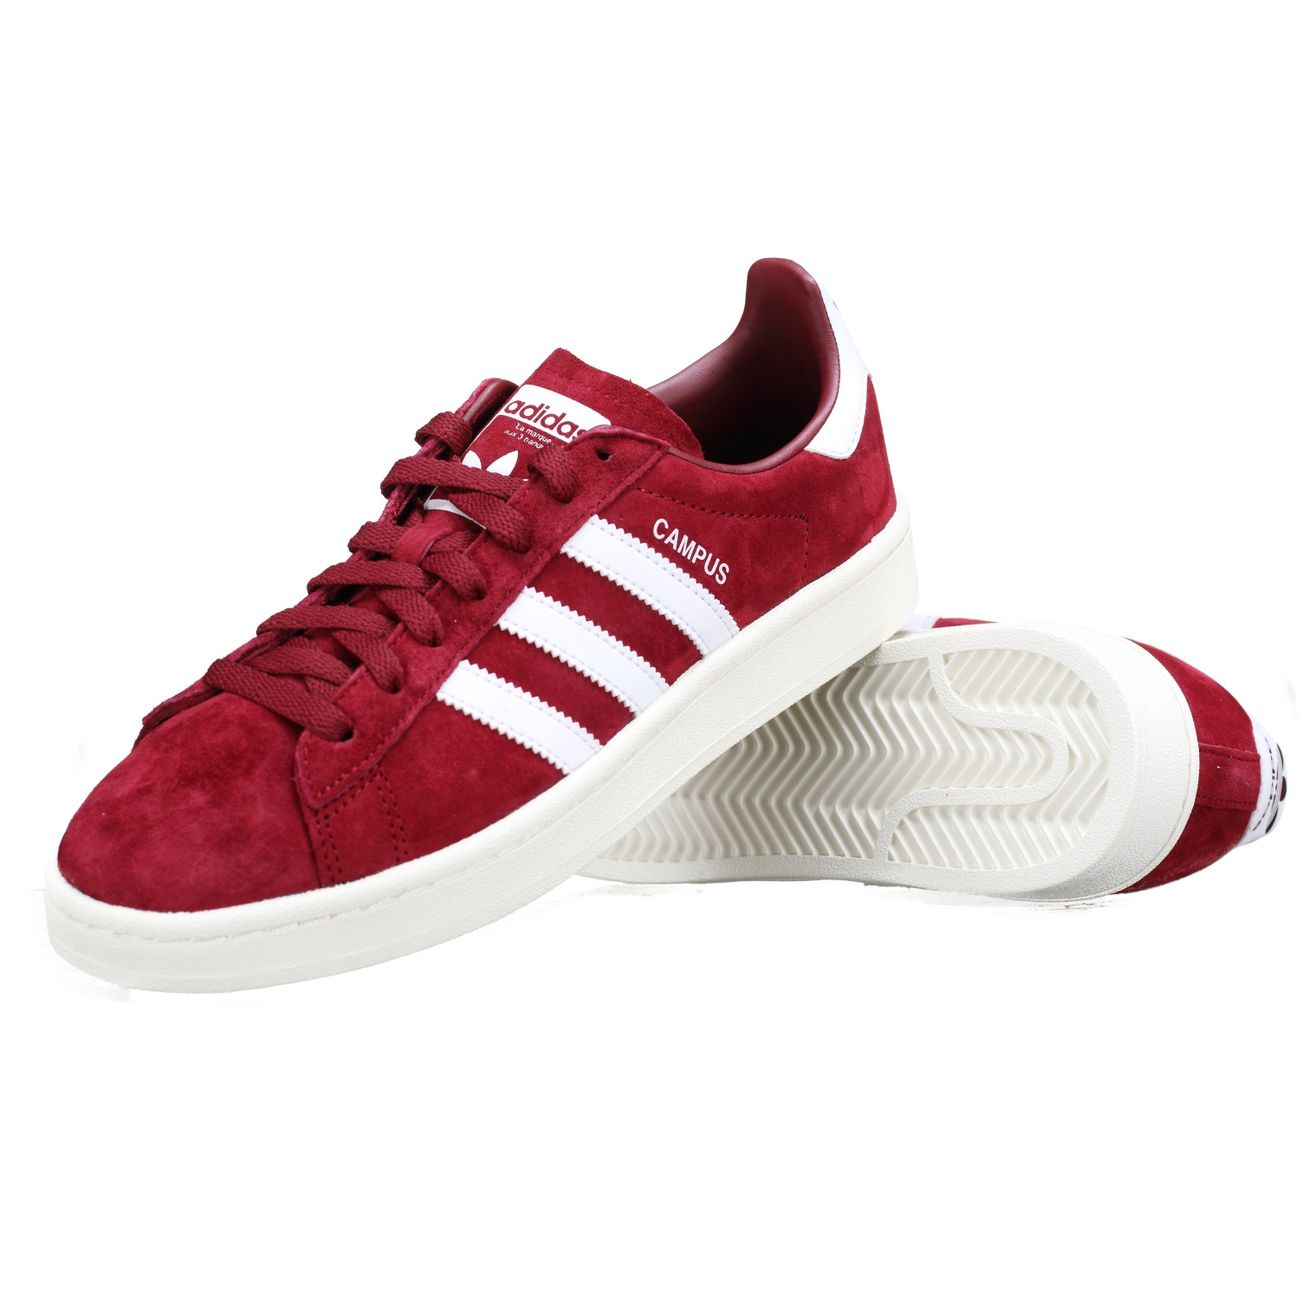 photos officielles 224a0 24926 Mode- Lifestyle homme ADIDAS Basket Adidas Campus Bz0087 Rouge